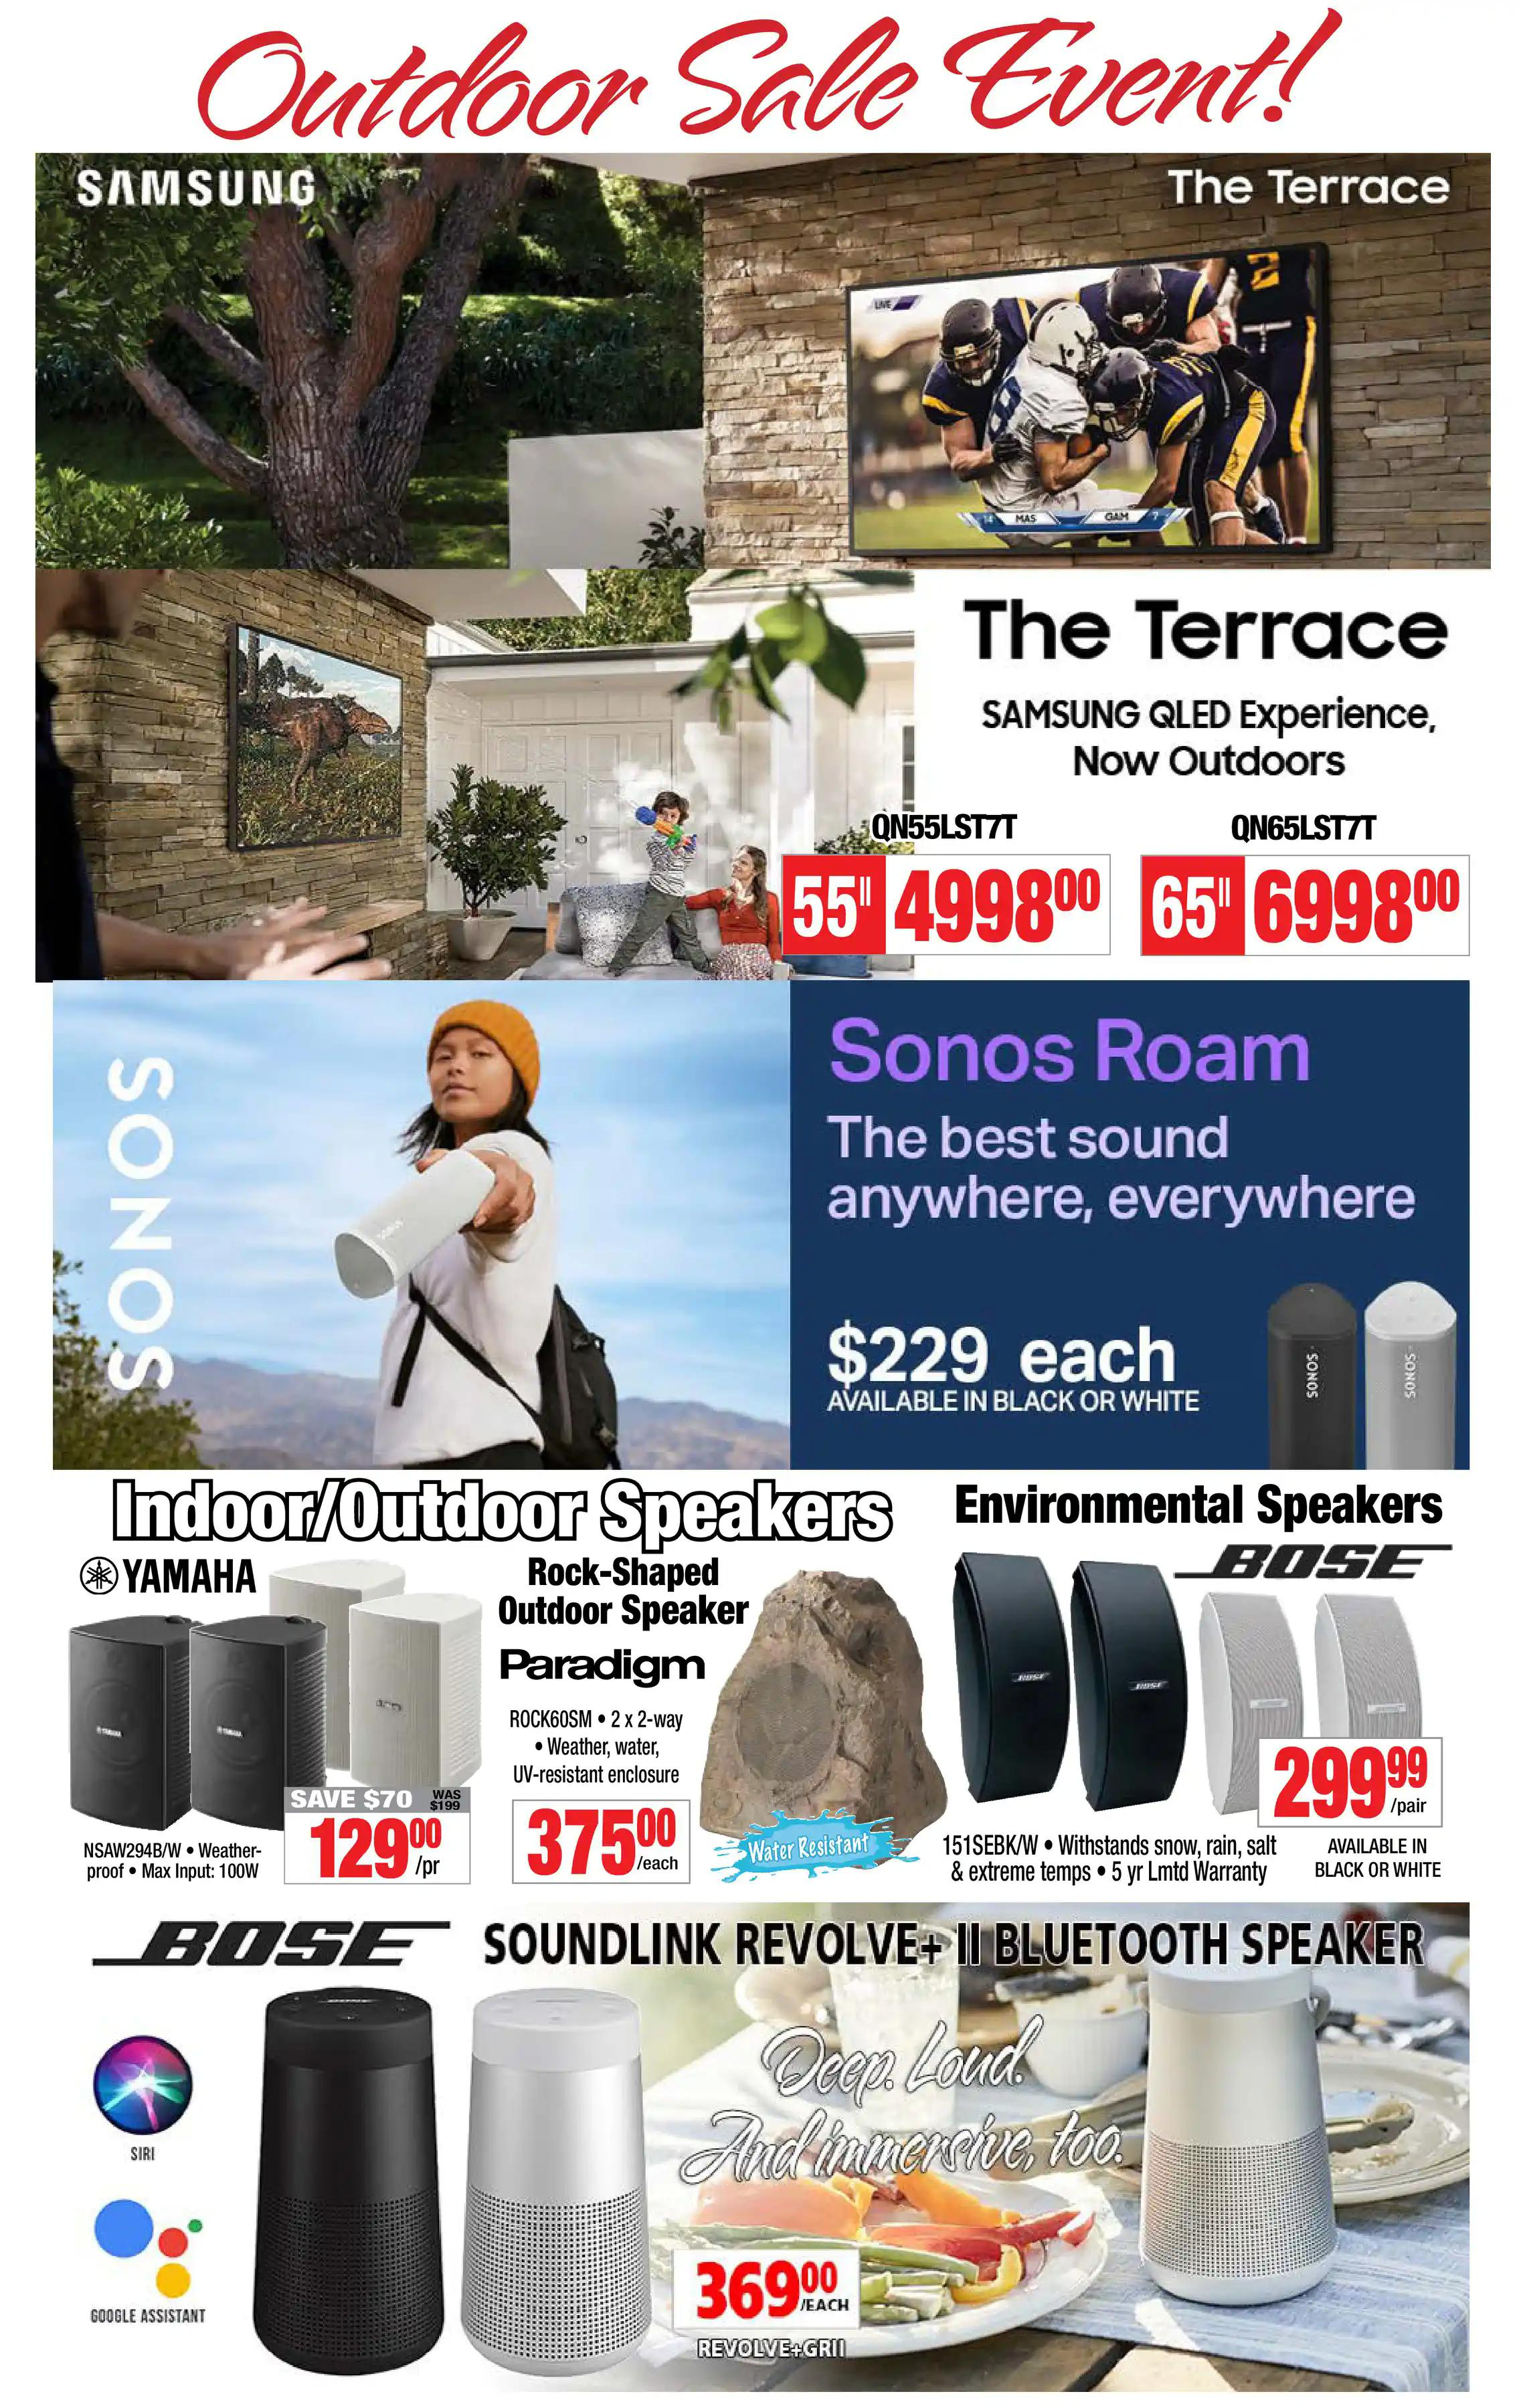 2001 Audio Video - Weekly Flyer Specials - Page 8